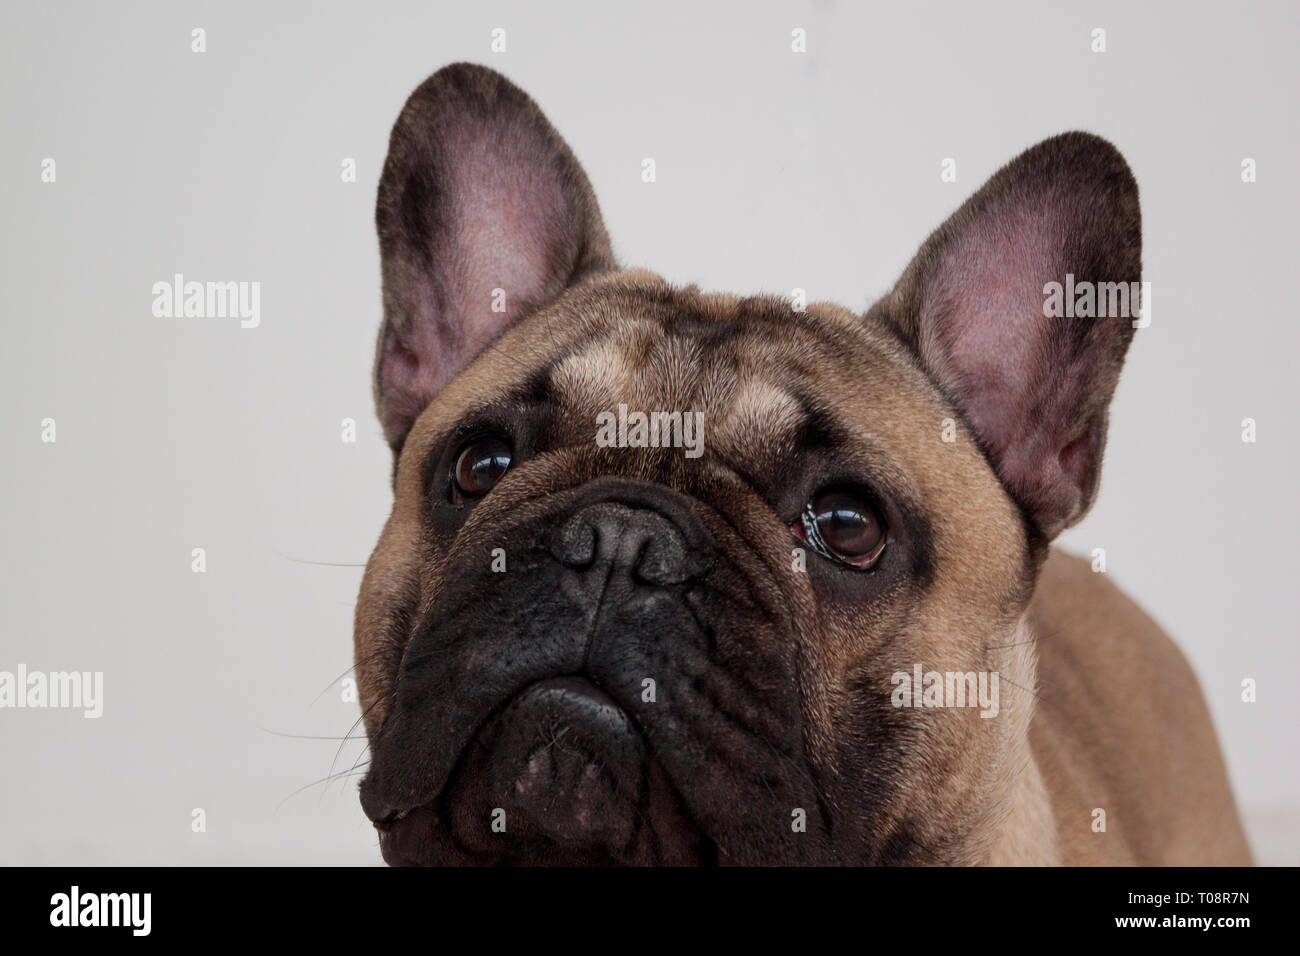 Black masked fawn french bulldog puppy close up. Pet animals. Purebred dog. - Stock Image